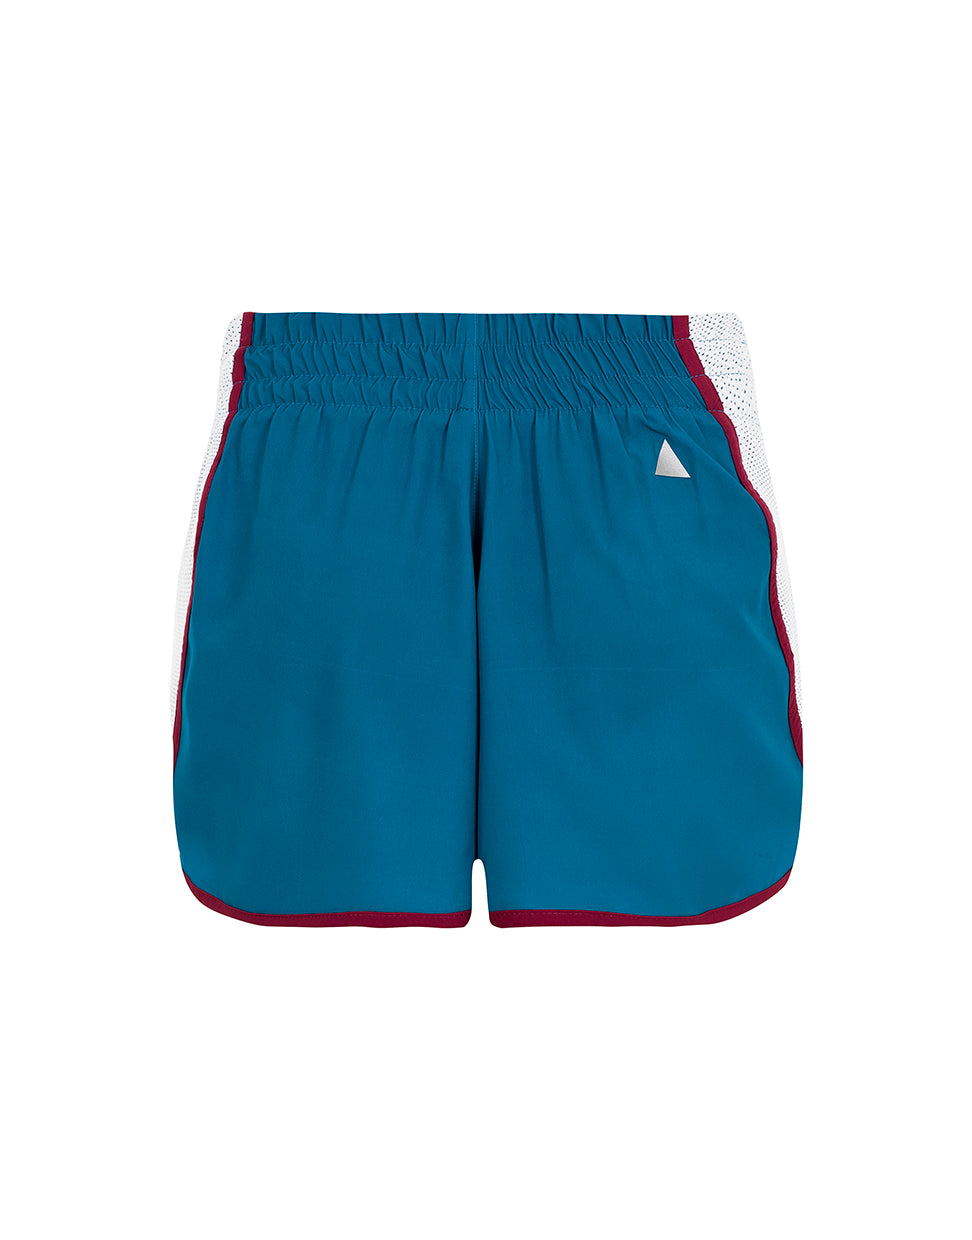 SHORTS NEW BASIC COLOR -AZUL